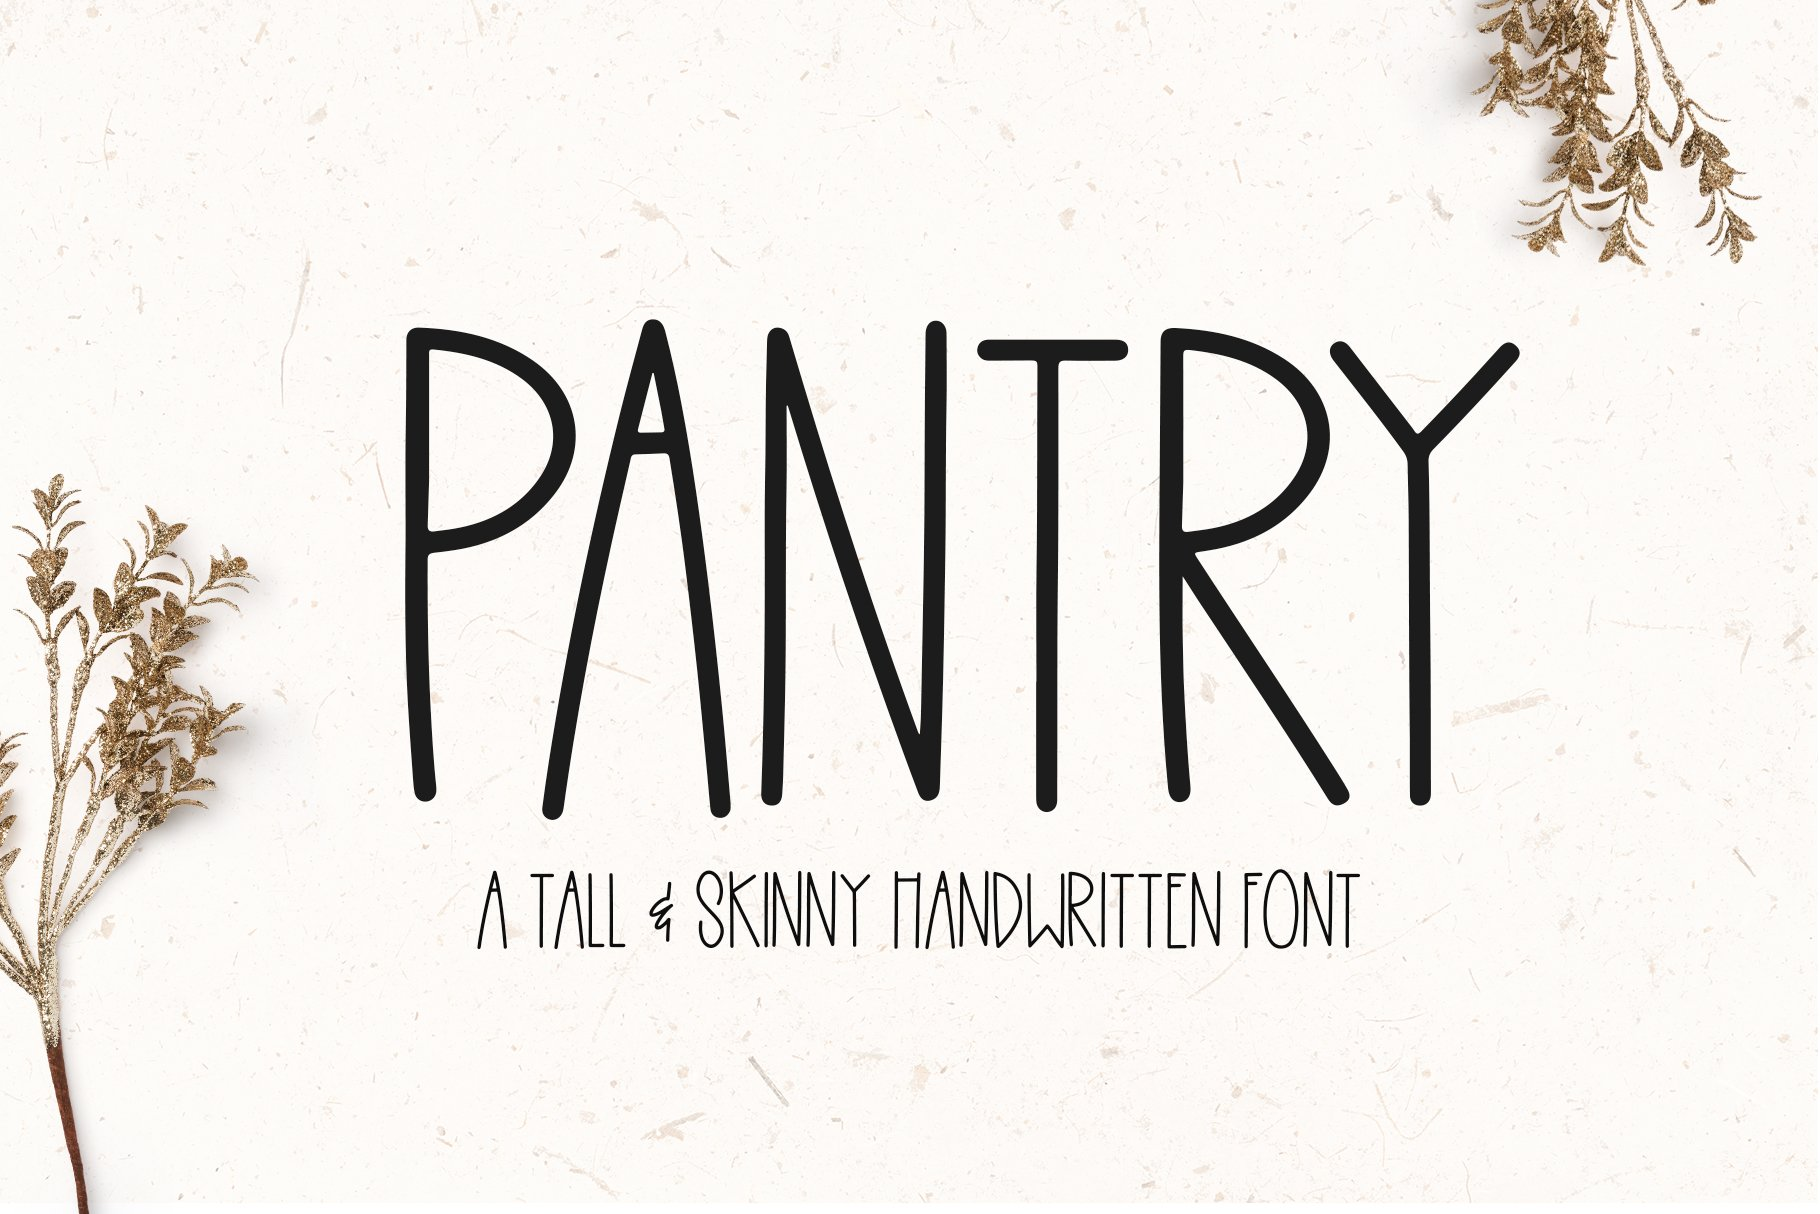 Pantry - A Tall Handwritten Font example image 1